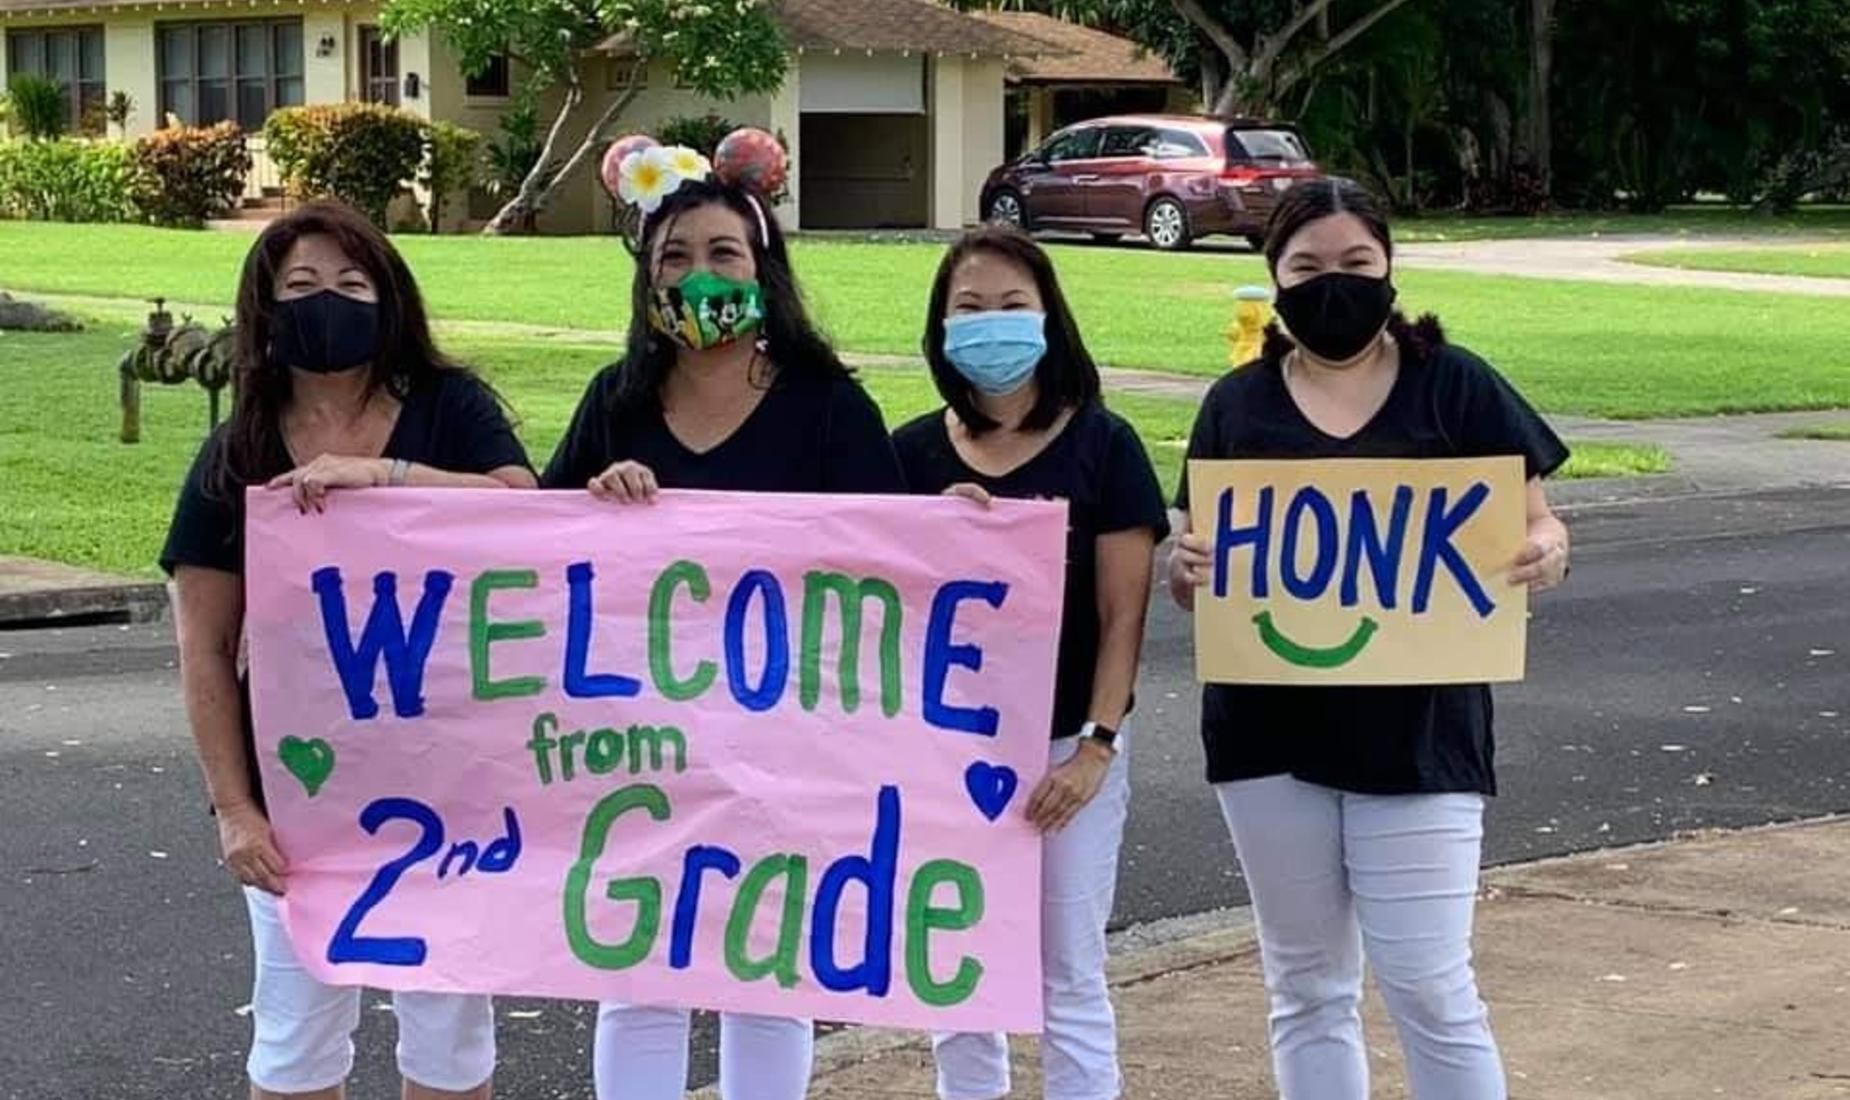 2nd Grade Teachers Welcoming students back to school